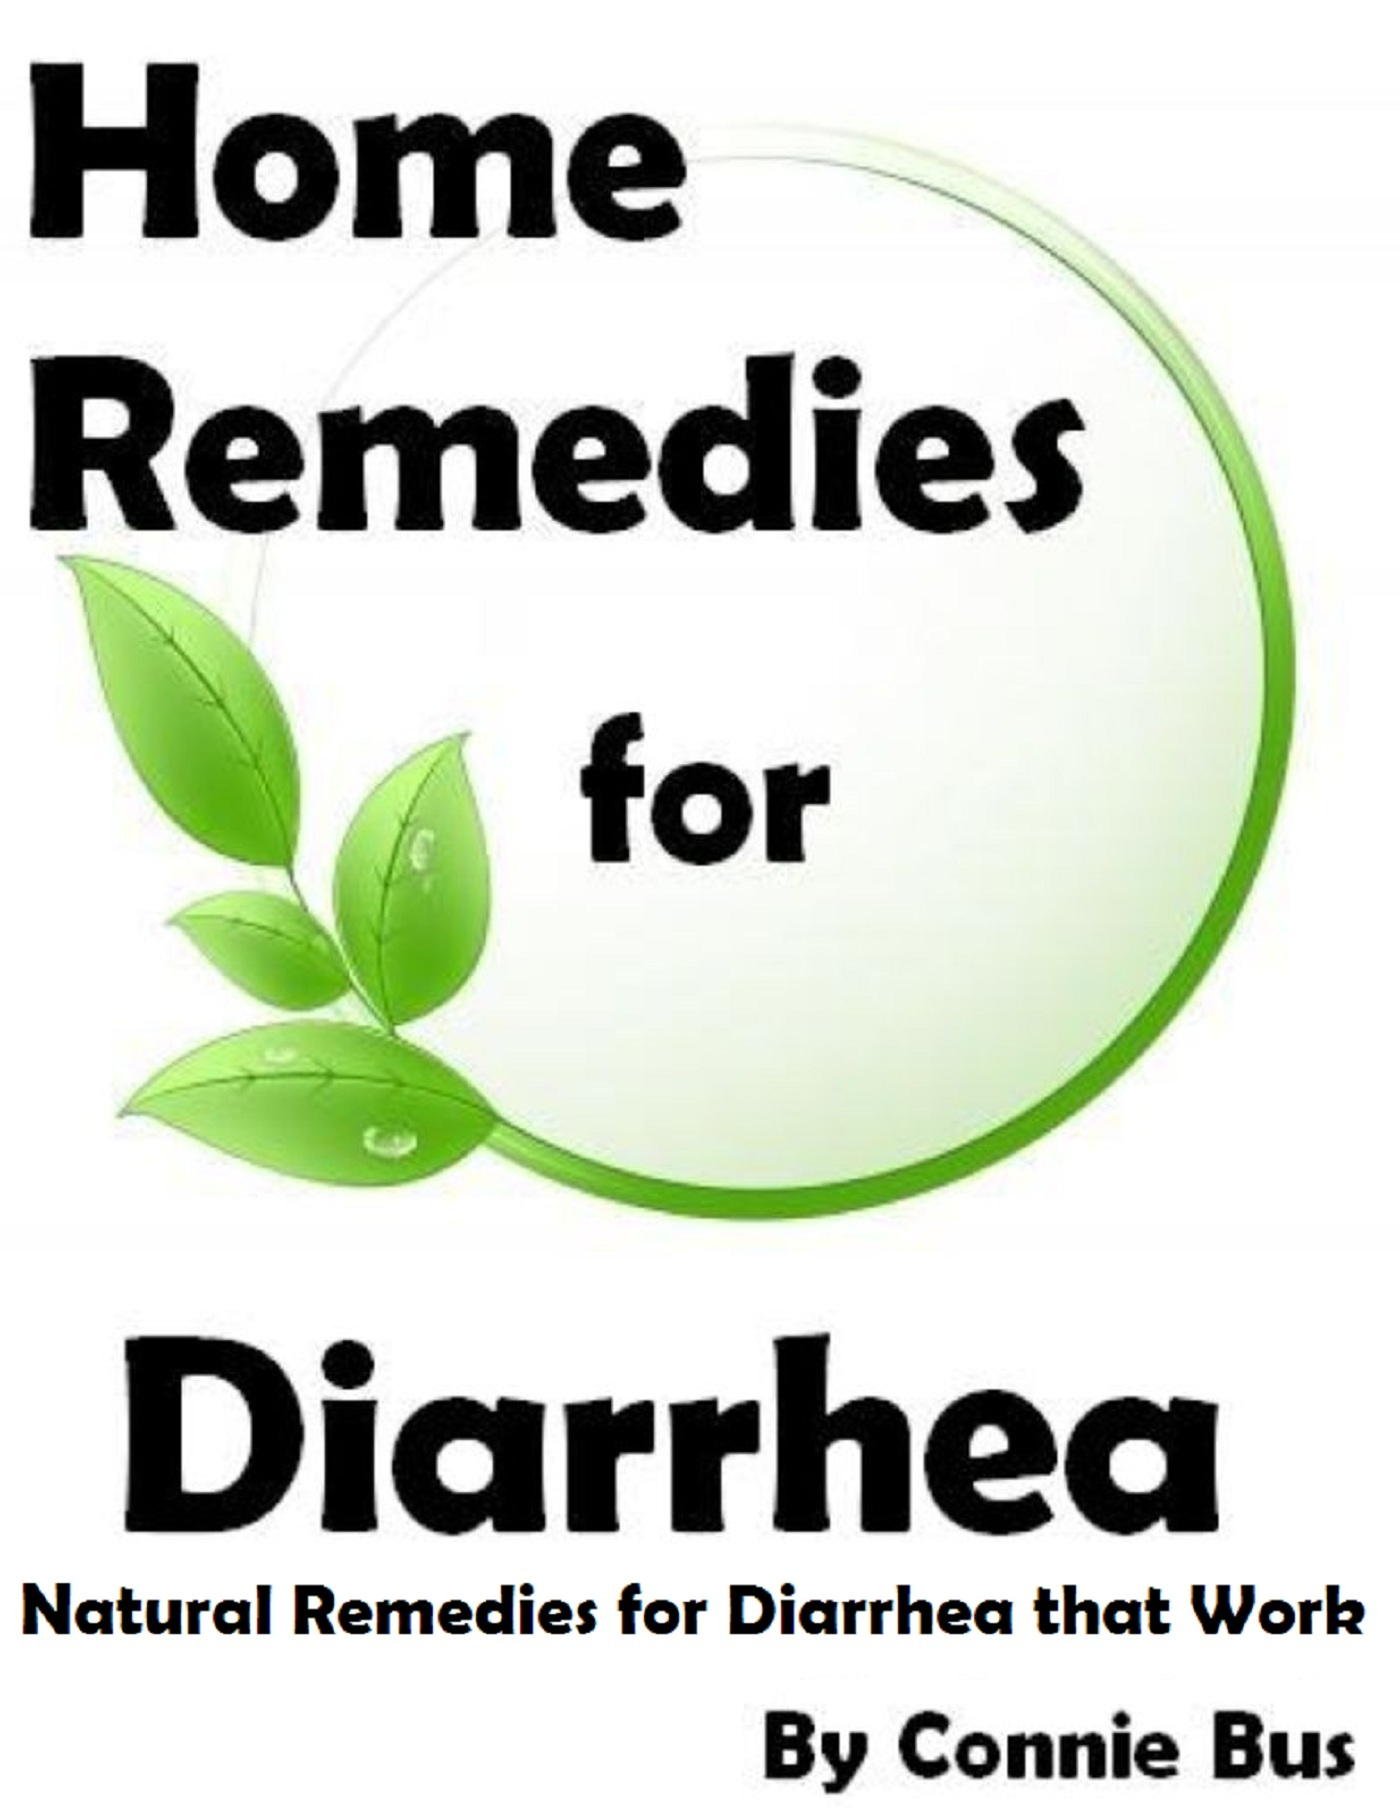 Home Remedies for Diarrhea: Natural Remedies for Diarrhea that Work